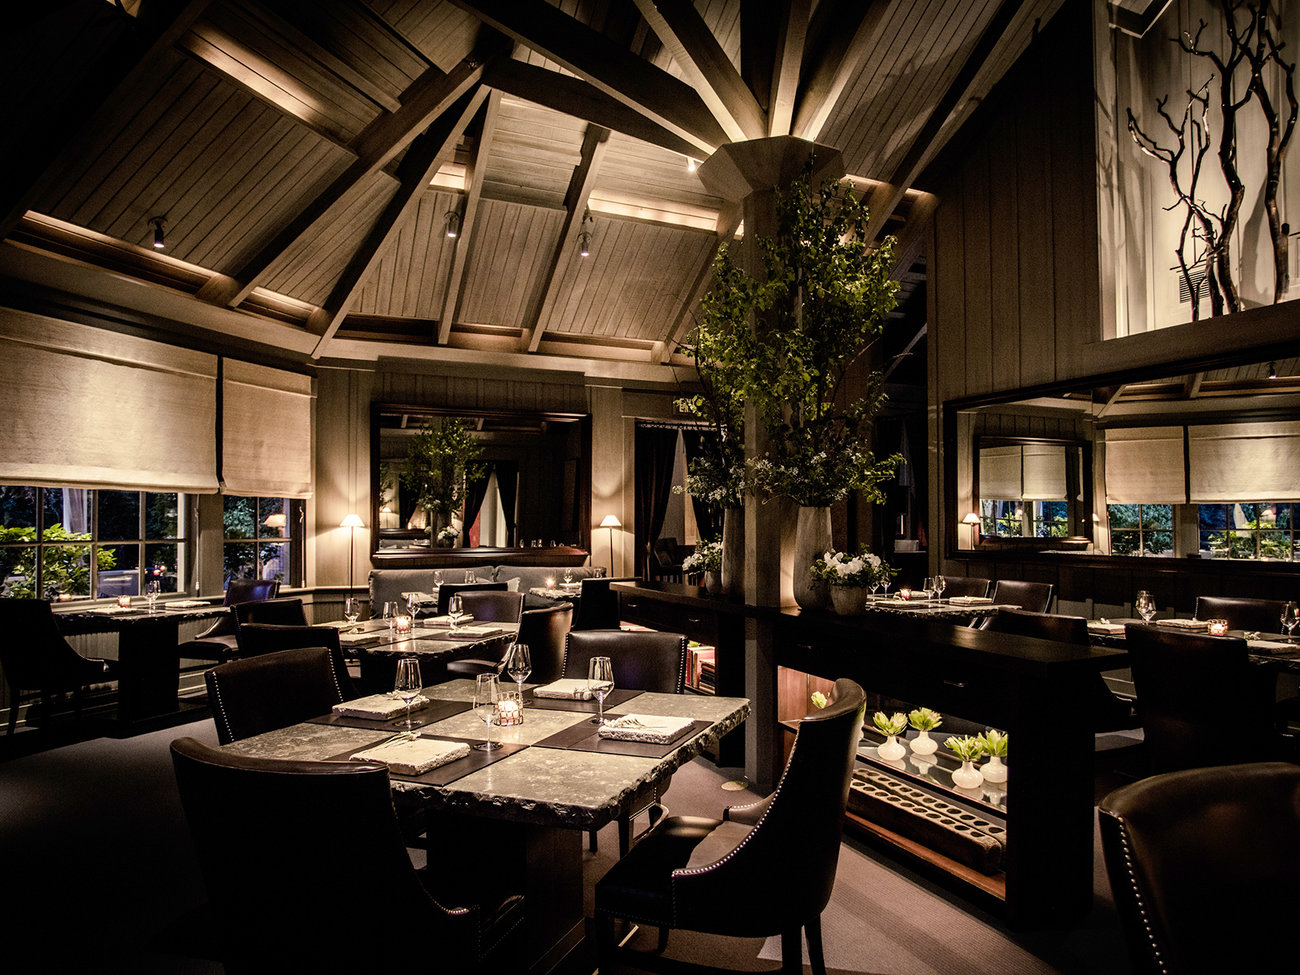 Restaurant at Meadowood in Napa